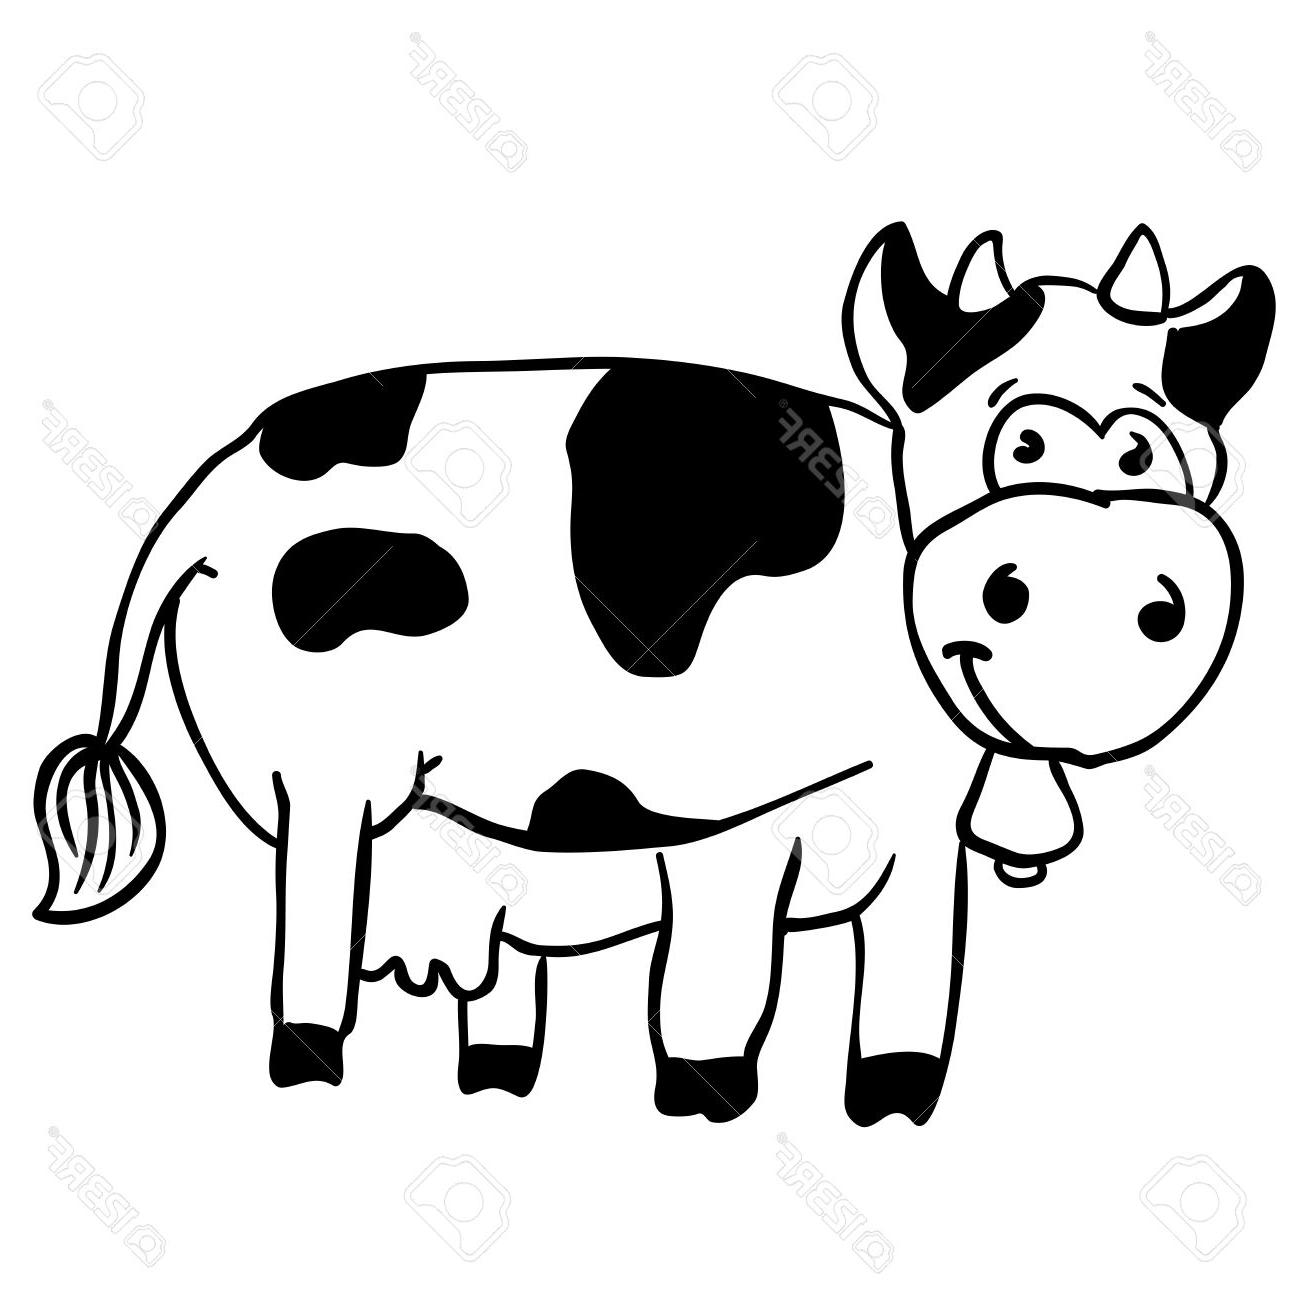 Cow Drawing Pictures Free Download Best Cow Drawing Pictures On